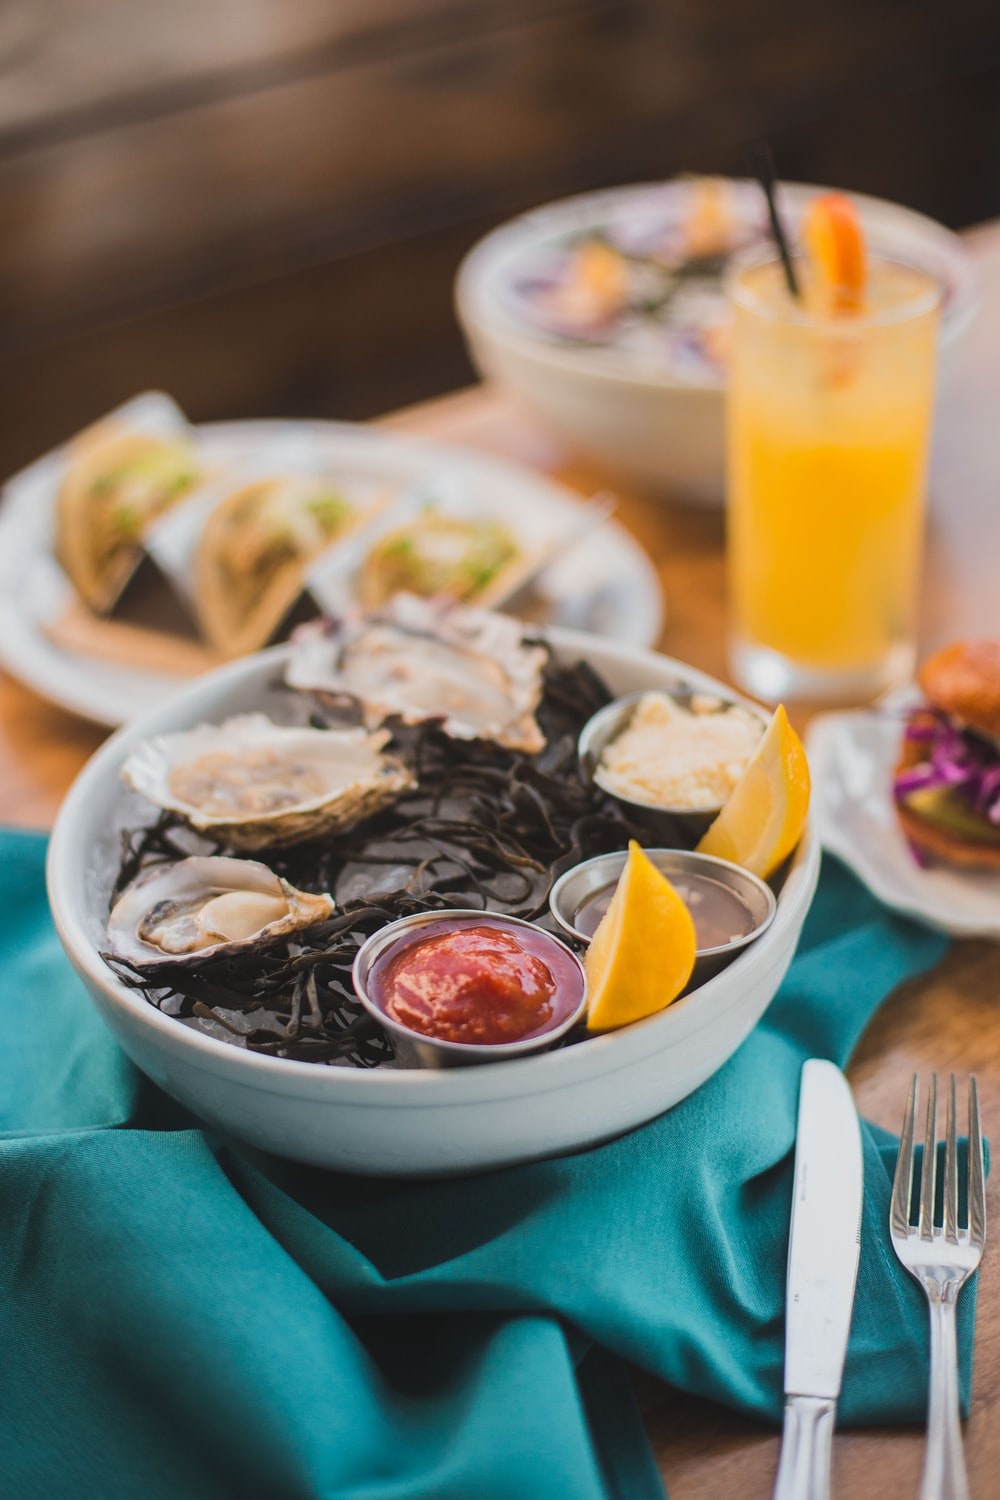 oyster in bowl